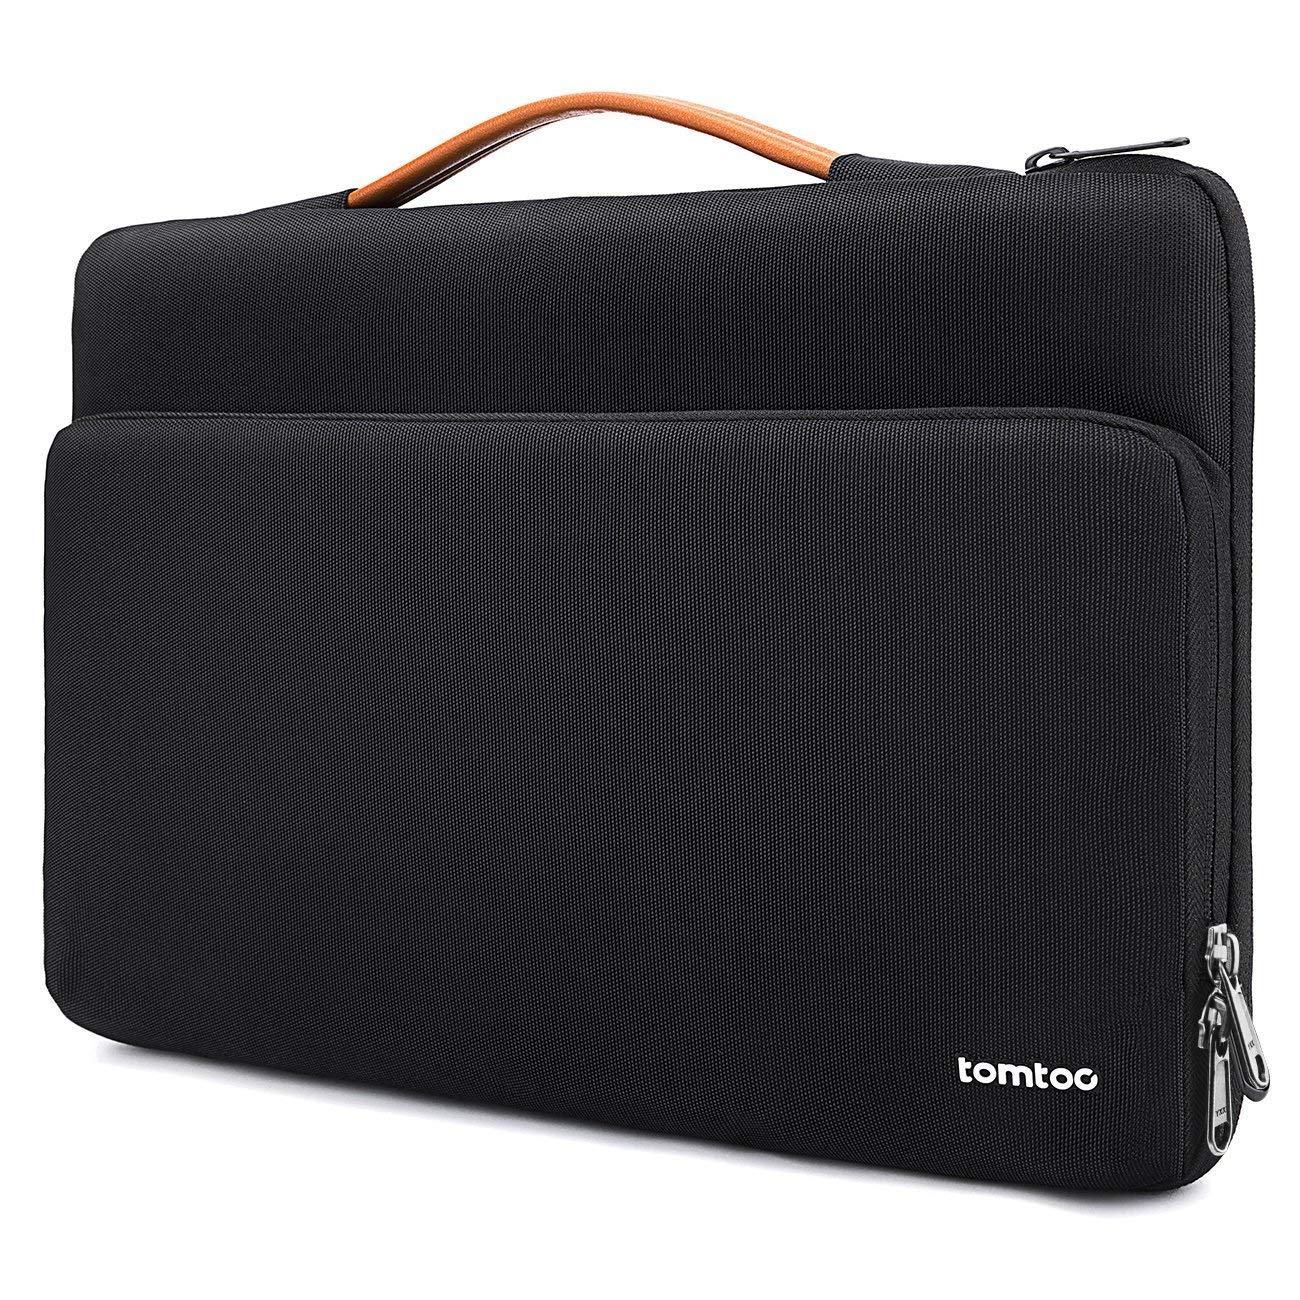 tomtoc 360 Protective Laptop Case Sleeve for 13.5 Inch Surface Laptop 3/2/1, Surface Book 2/1, Water-Resistant Laptop Case for 13 Inch Old MacBook Air, Old MacBook Pro Retina, Ultrabook Accessory Bag